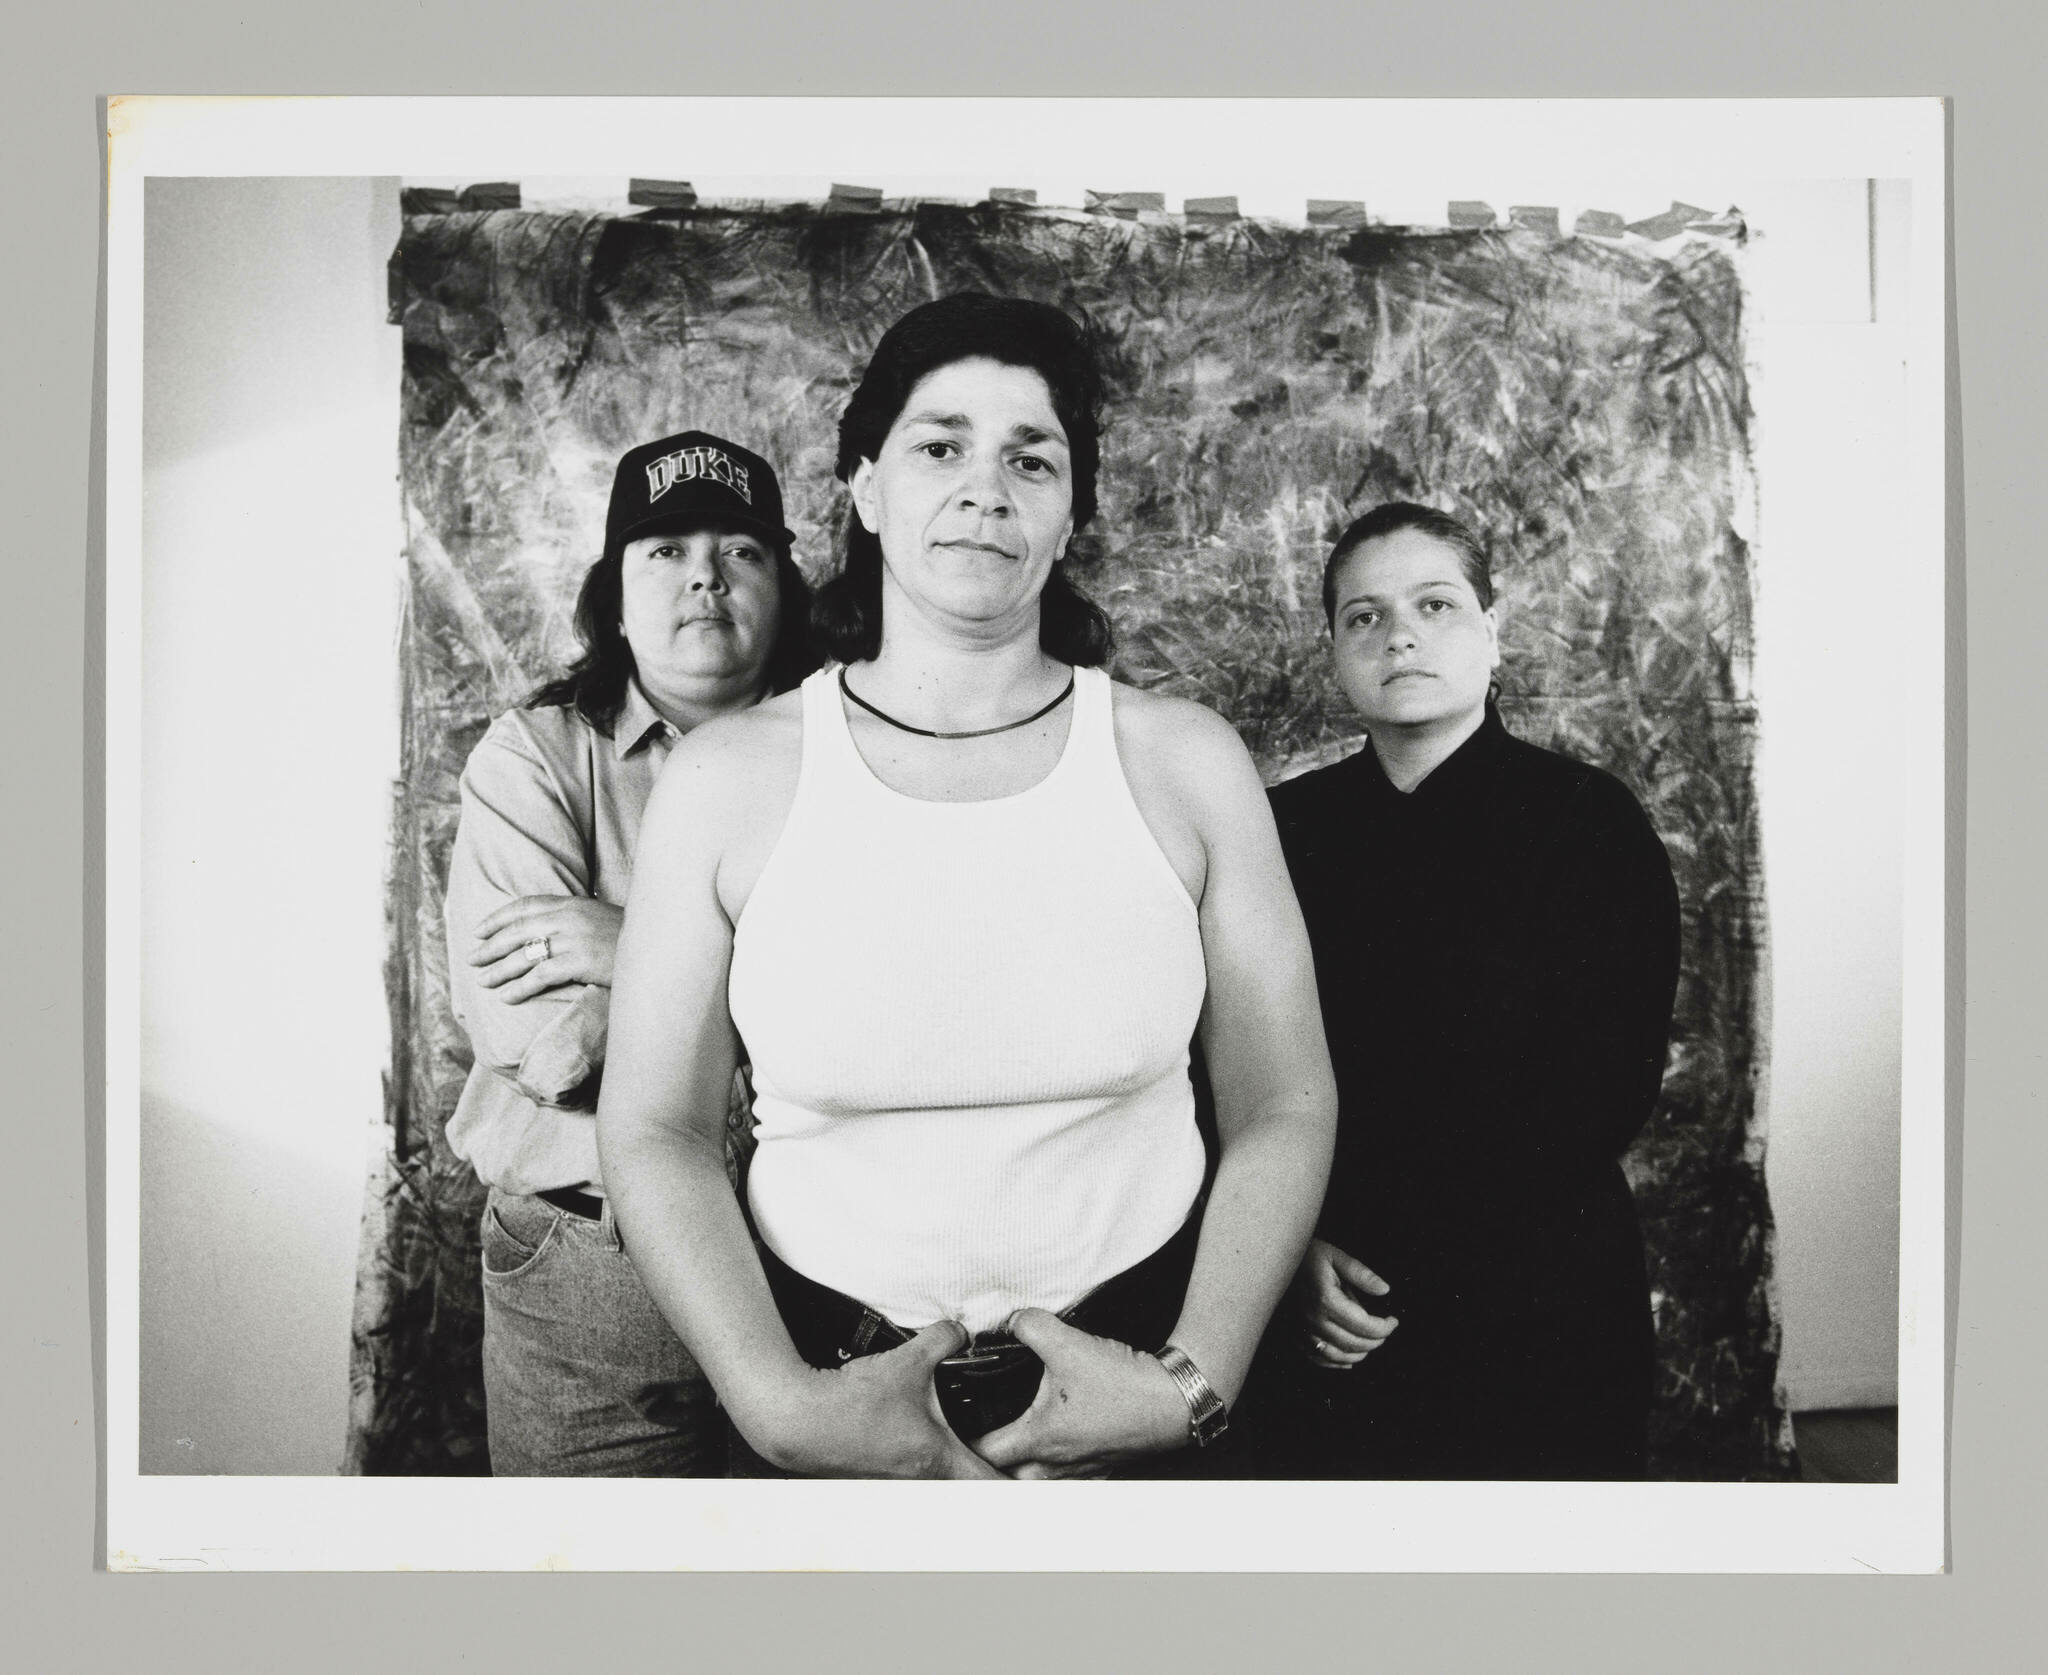 Three figures stand in front of a studio photography backdrop